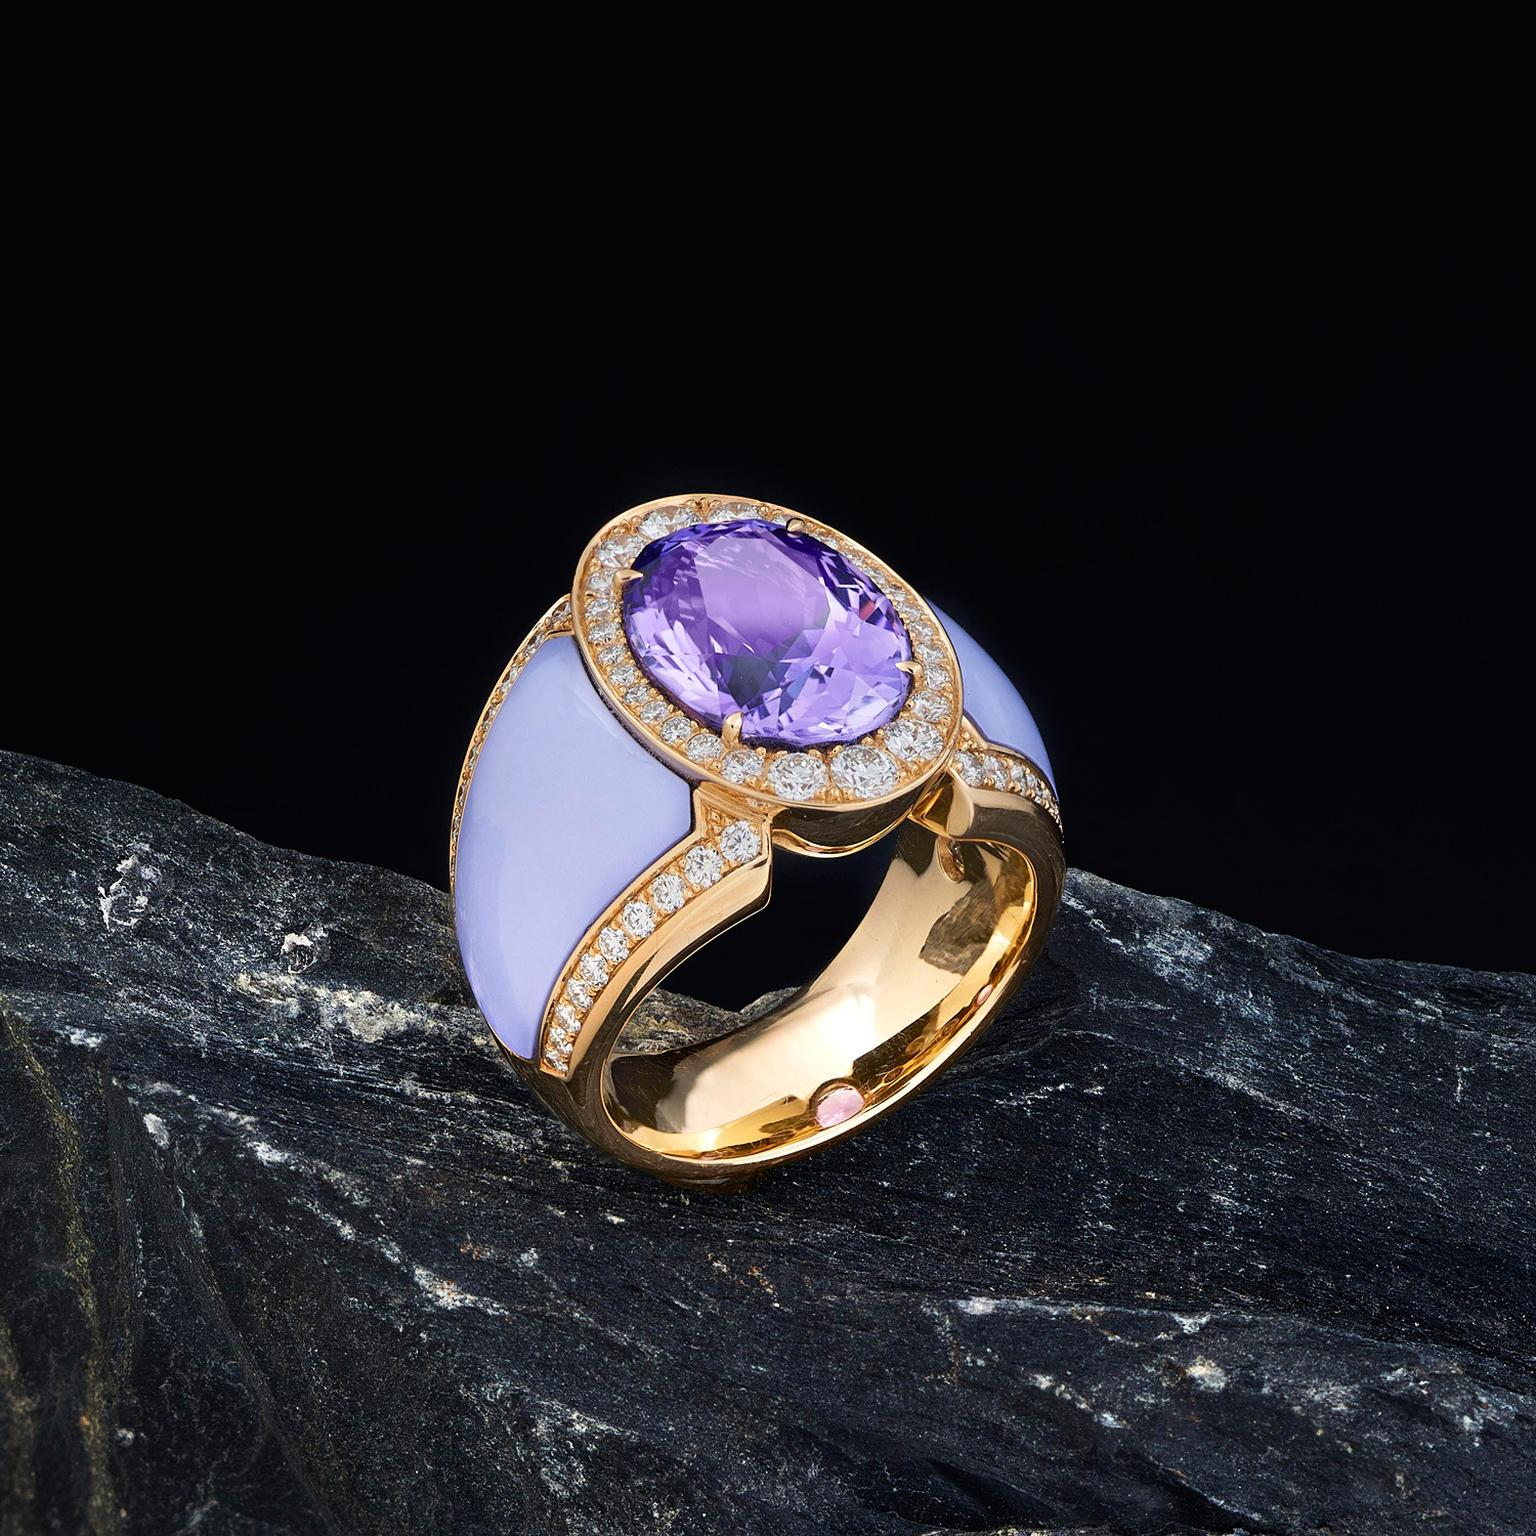 Doris Hangartner tanzanite and ceramic ring